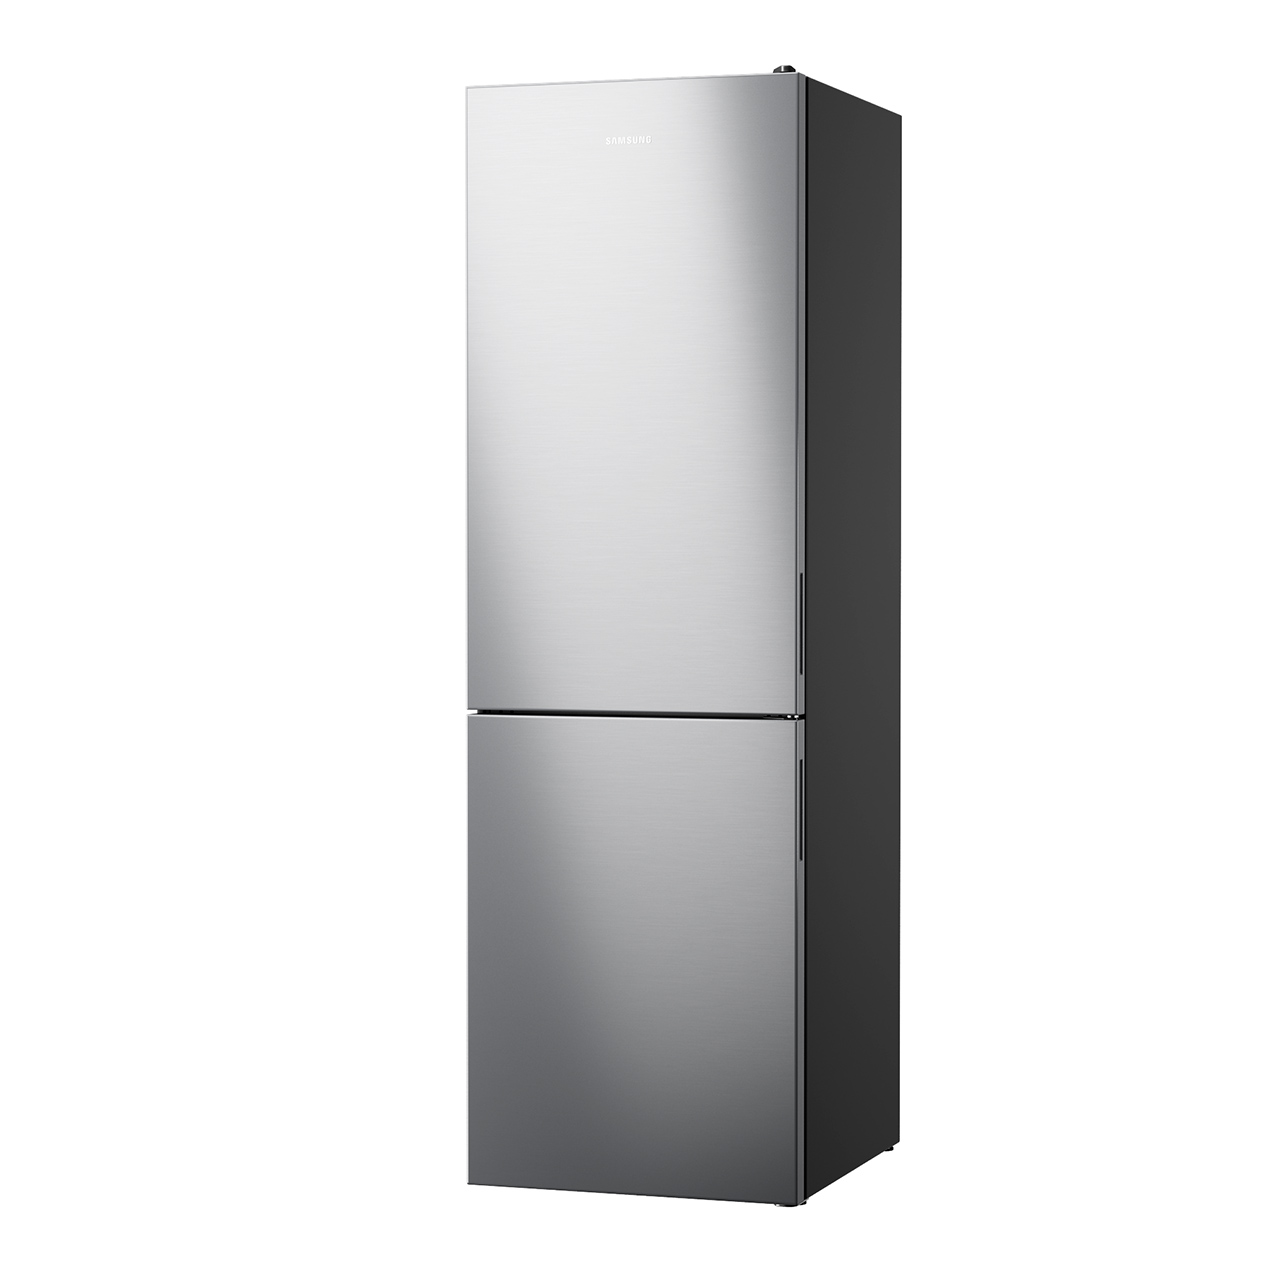 RB3V Fridge Freezer 186 cm by Samsung